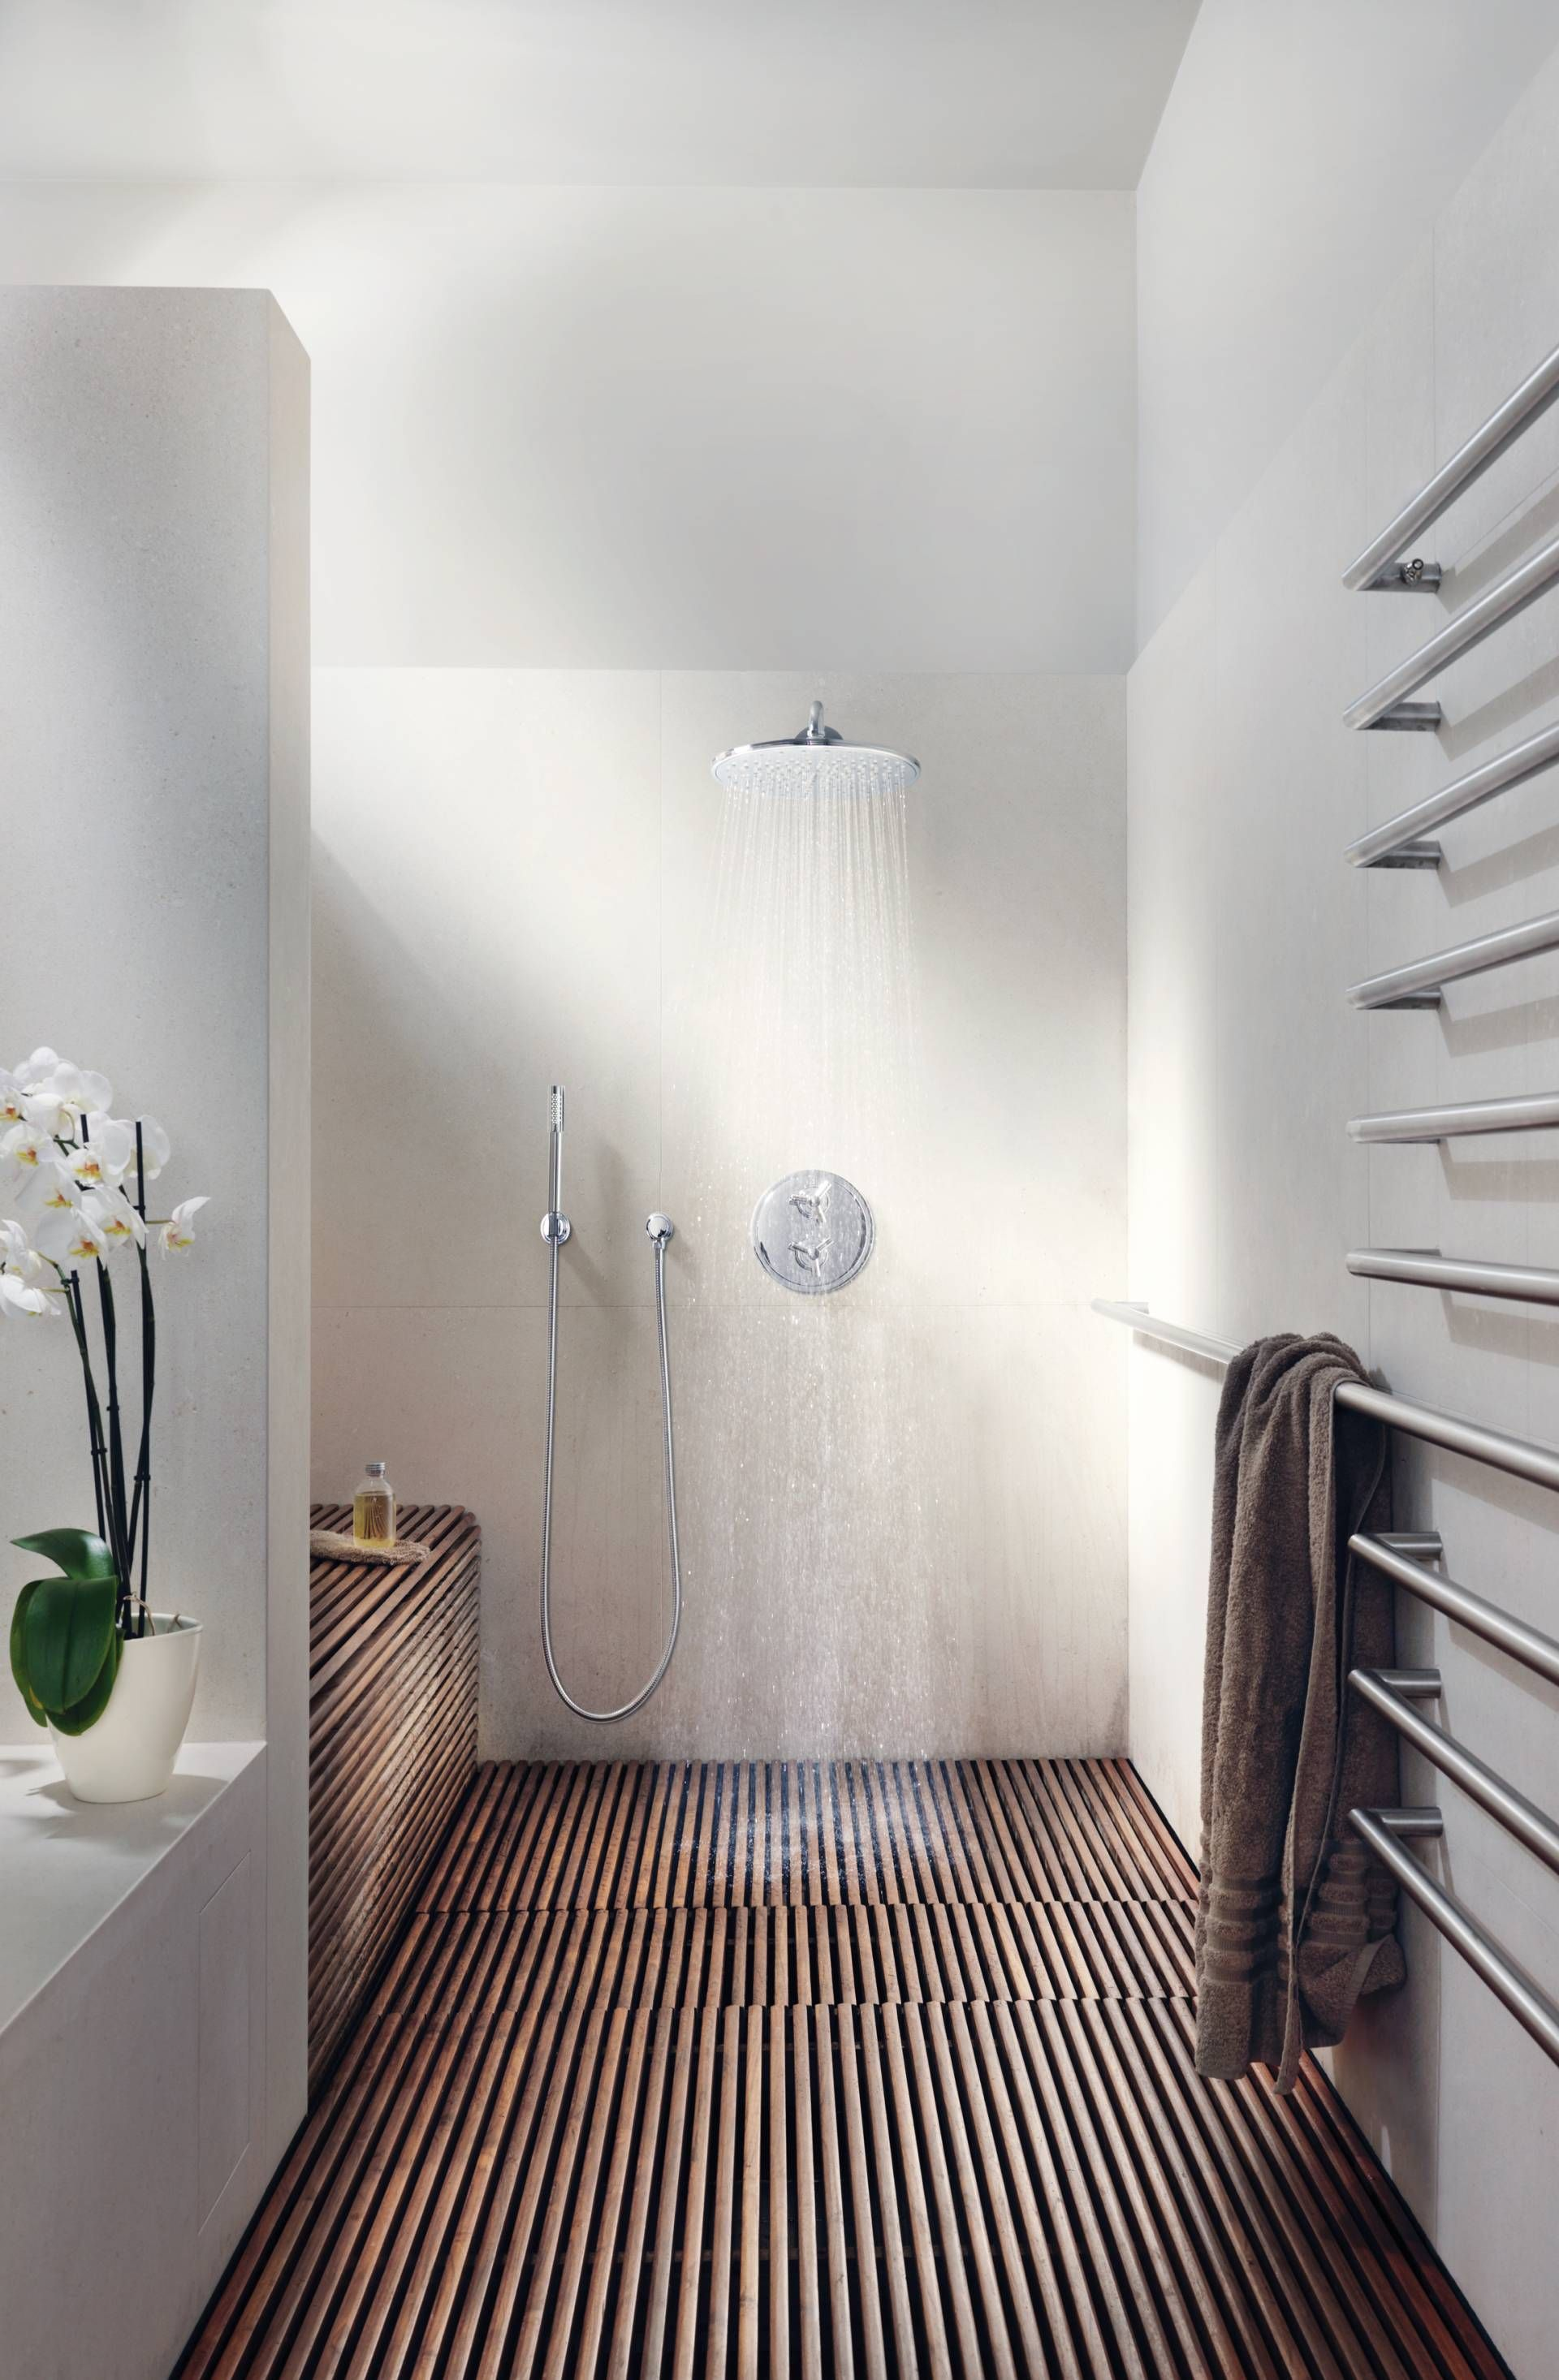 Wood Slat Shower Floors Are Heavily Inspired By Scandinavian Or Japanese Bathrooms Add Warmth To Standard Minimalist Modern